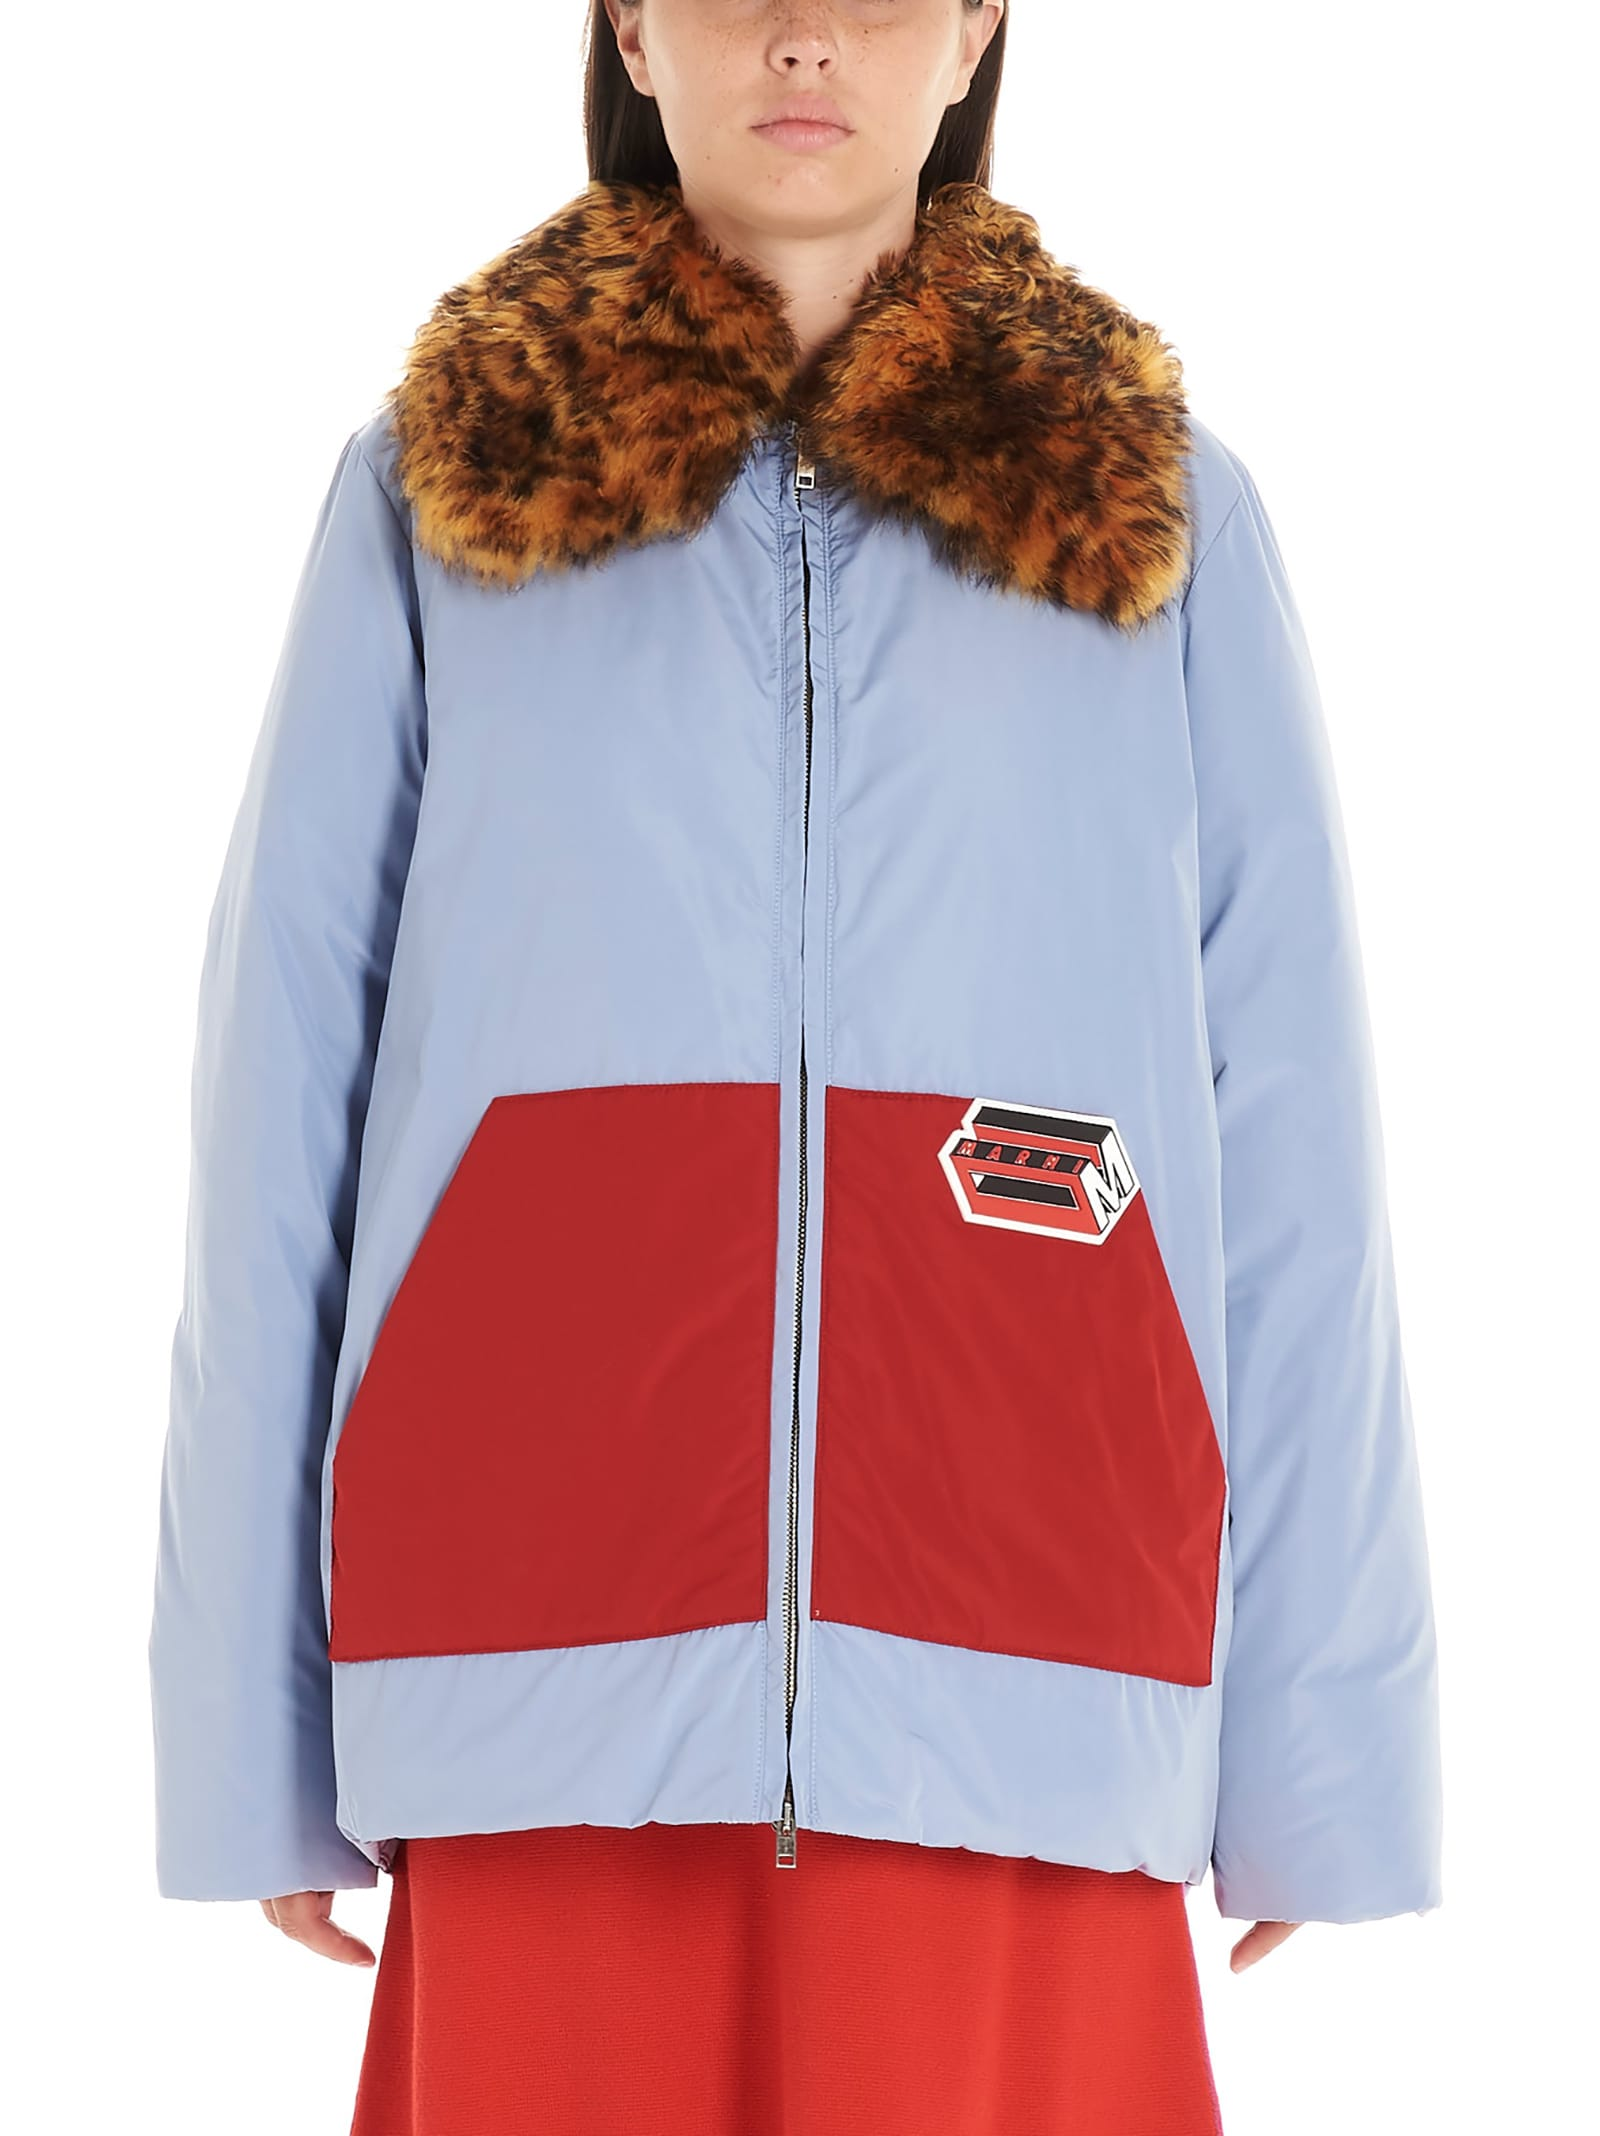 Marni Logo Patch Jacket